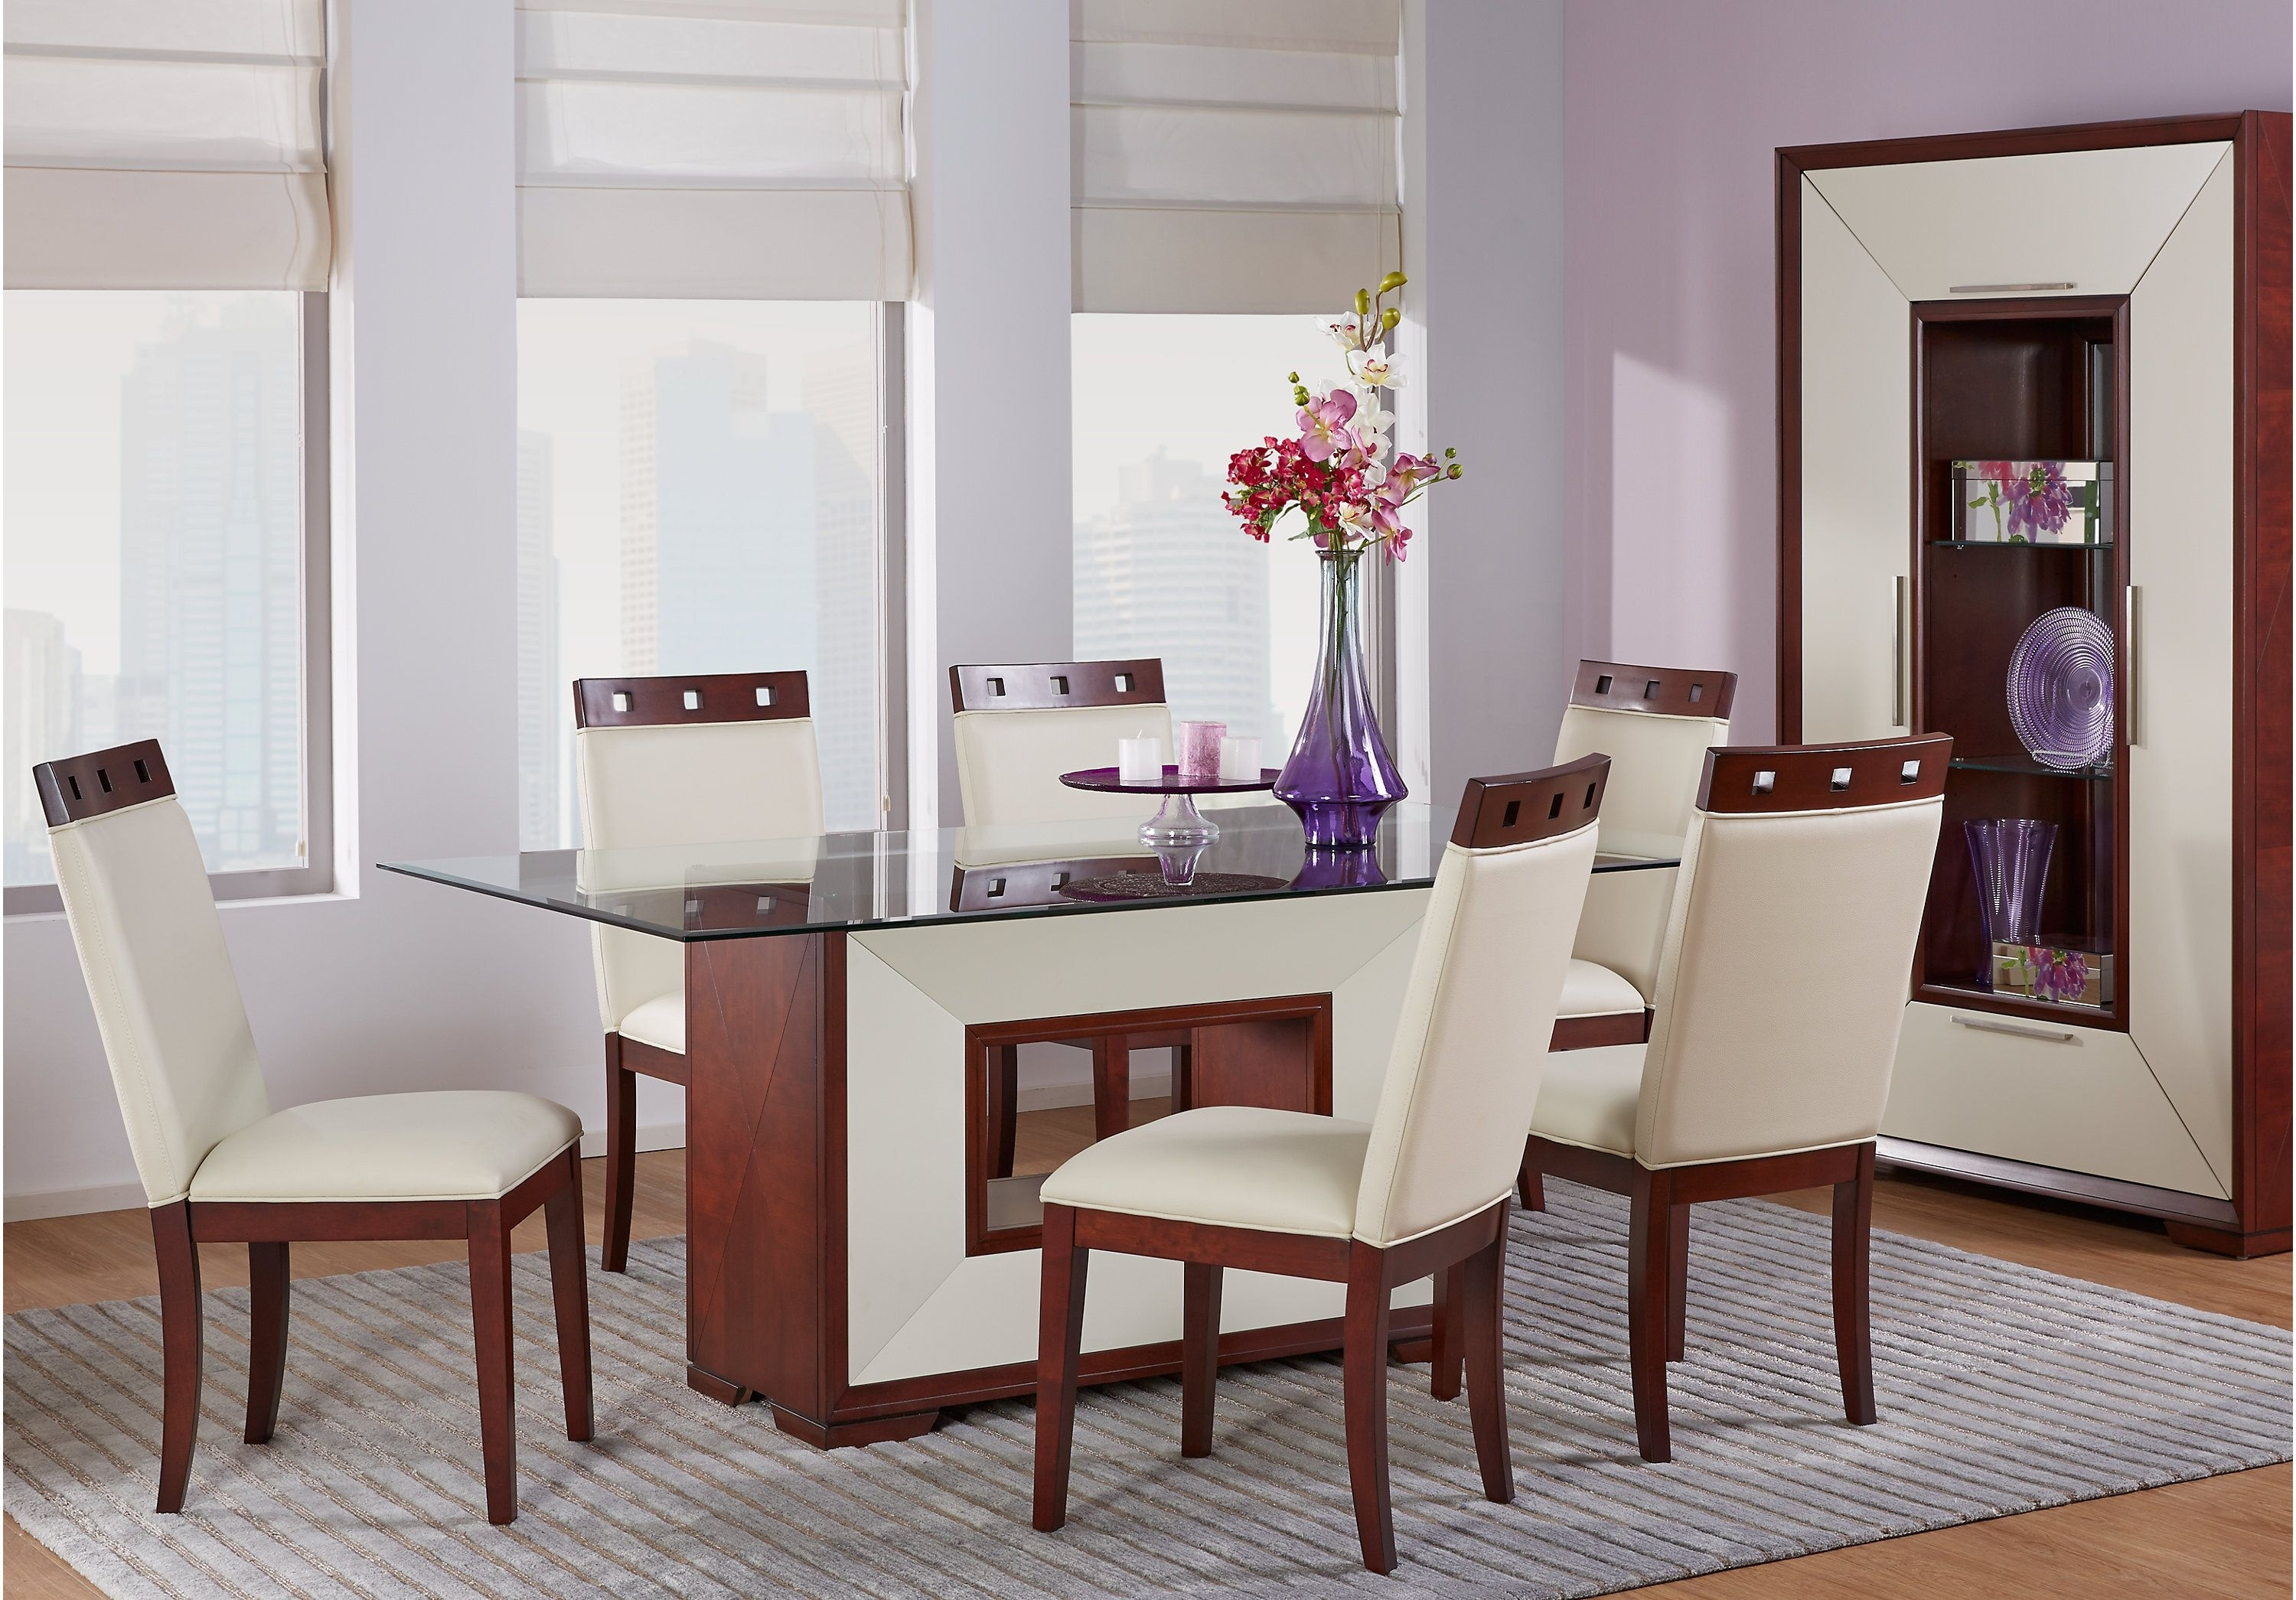 Sofia Vergara Savona Ivory 5 Pc Rectangle Dining Room With Glass Top Regarding 2017 Caira Black 7 Piece Dining Sets With Arm Chairs & Diamond Back Chairs (Photo 16 of 20)